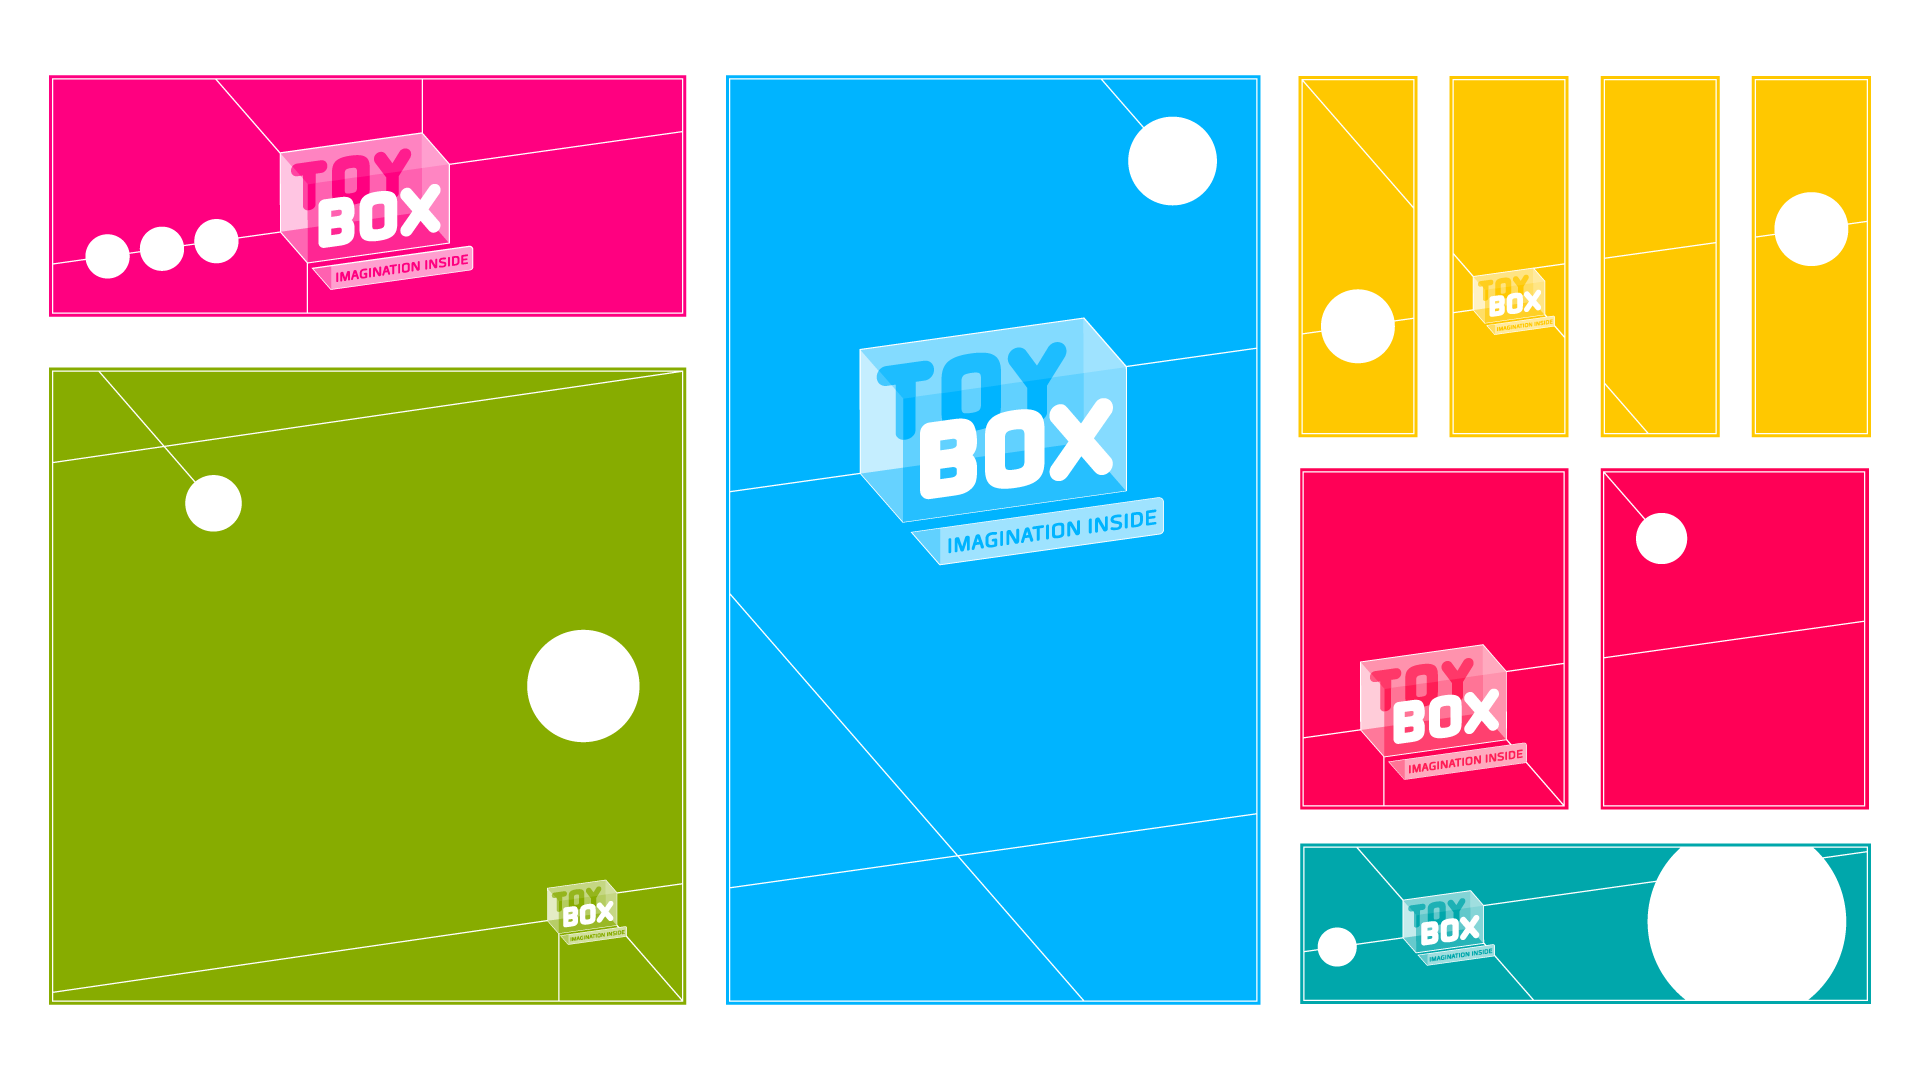 toybox_branding_03.png